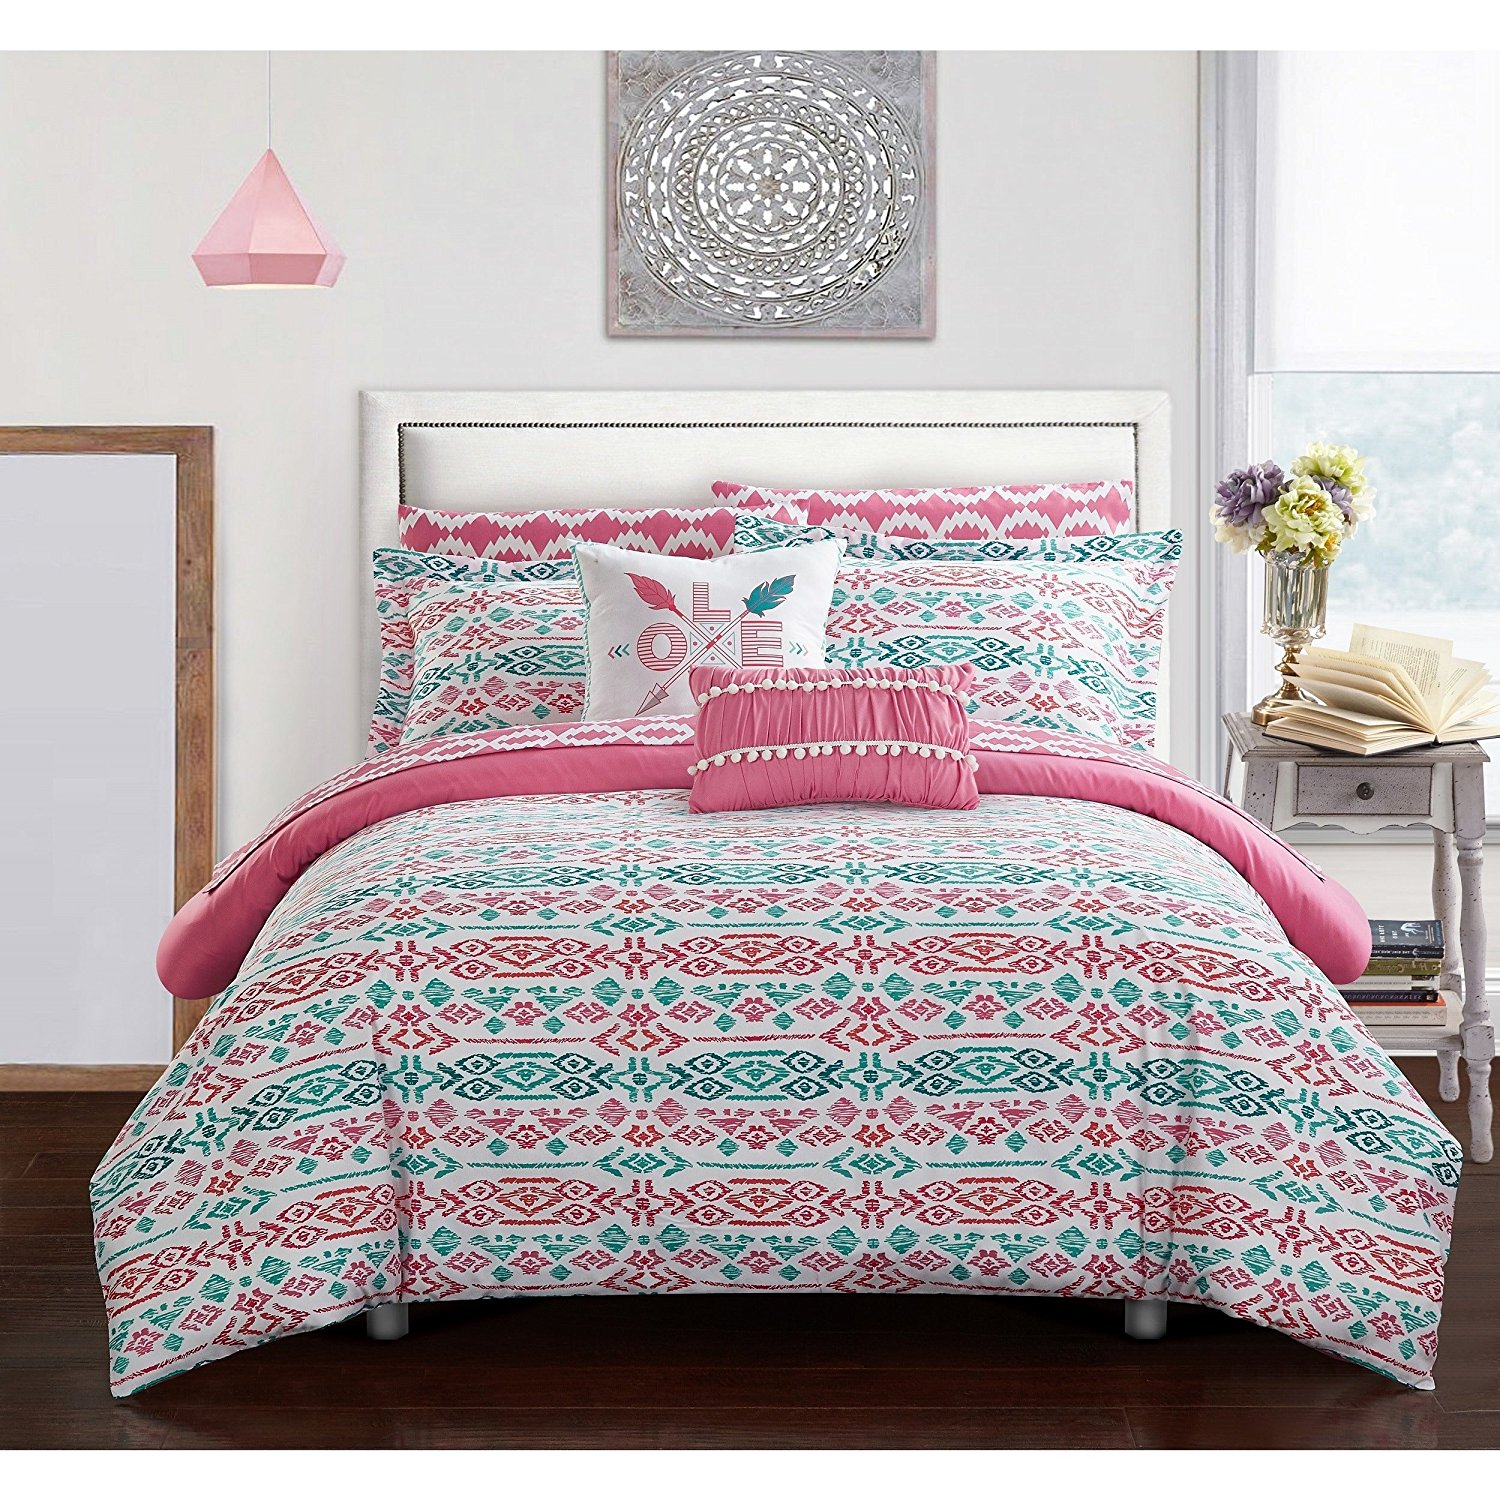 L&M 7 Piece Girls White Pink Teal Blue Aztec Tribal Motif Themed Comforter Twin Set, All Over Bright Ikat Southwest Bedding, Vibrant Girly Intricate South West Native American Pattern, Microfiber